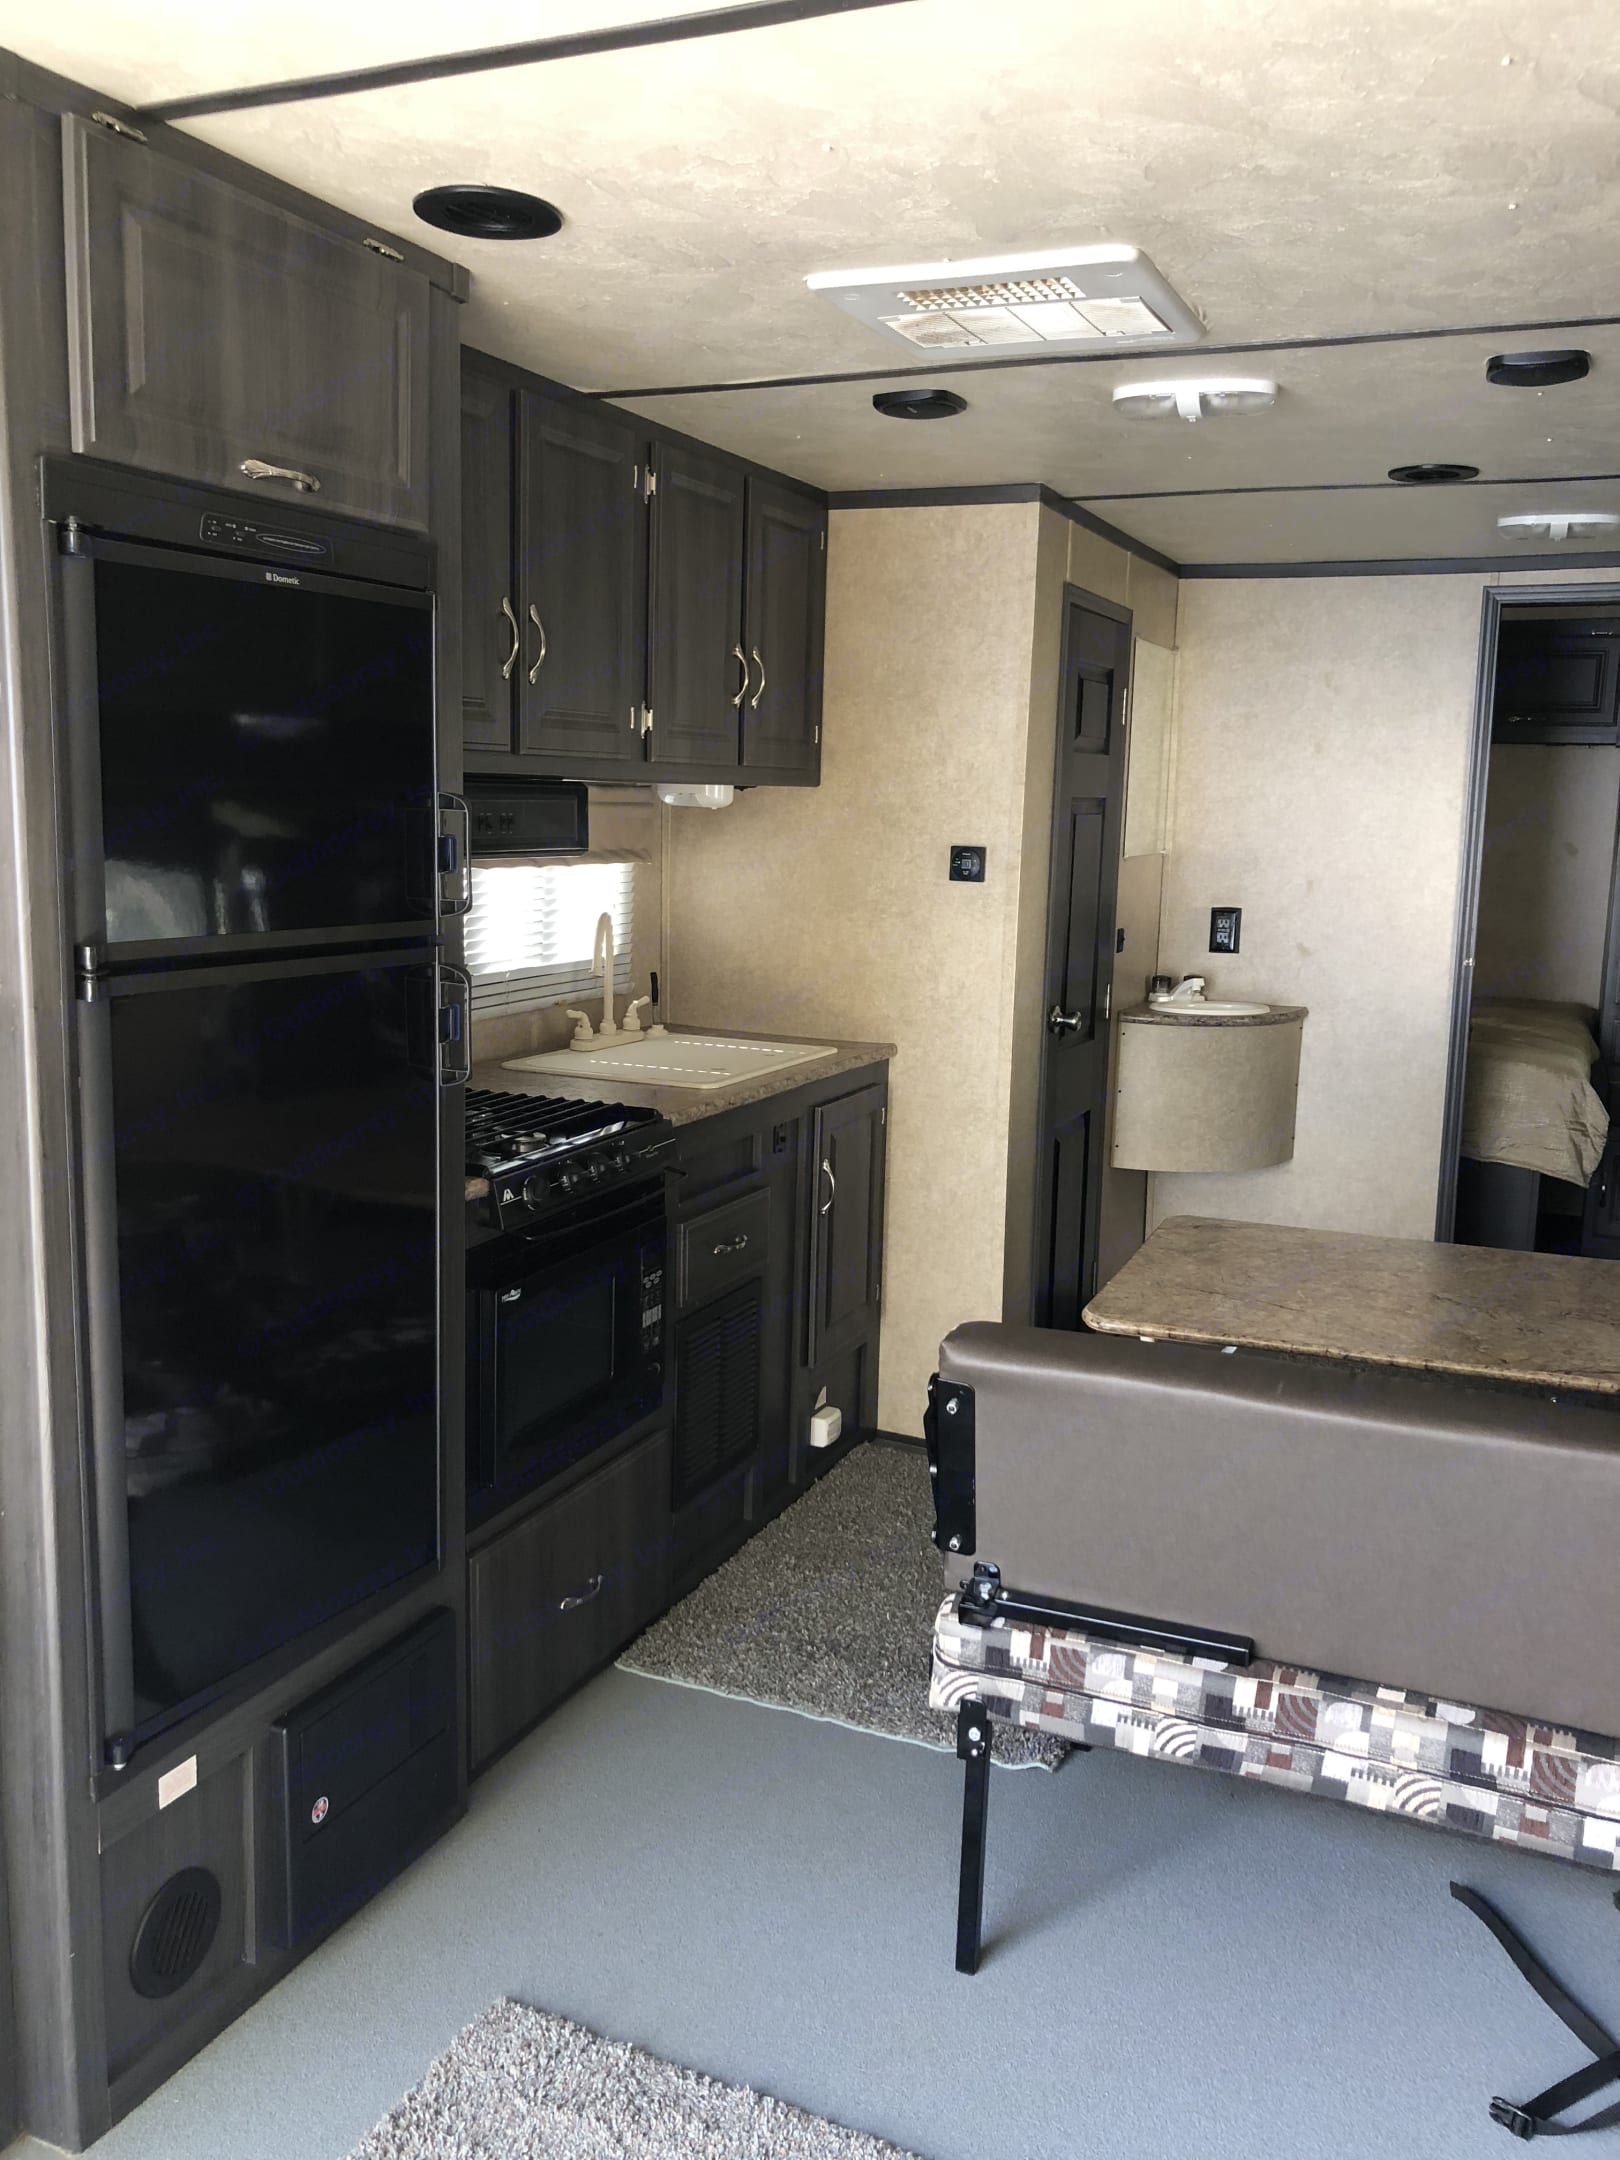 Kitchen/dining area all ready for those family meals together!  Includes a convection/microwave oven combo, 3 burner stove top. . Forest River Work And Play 25UDT 2013